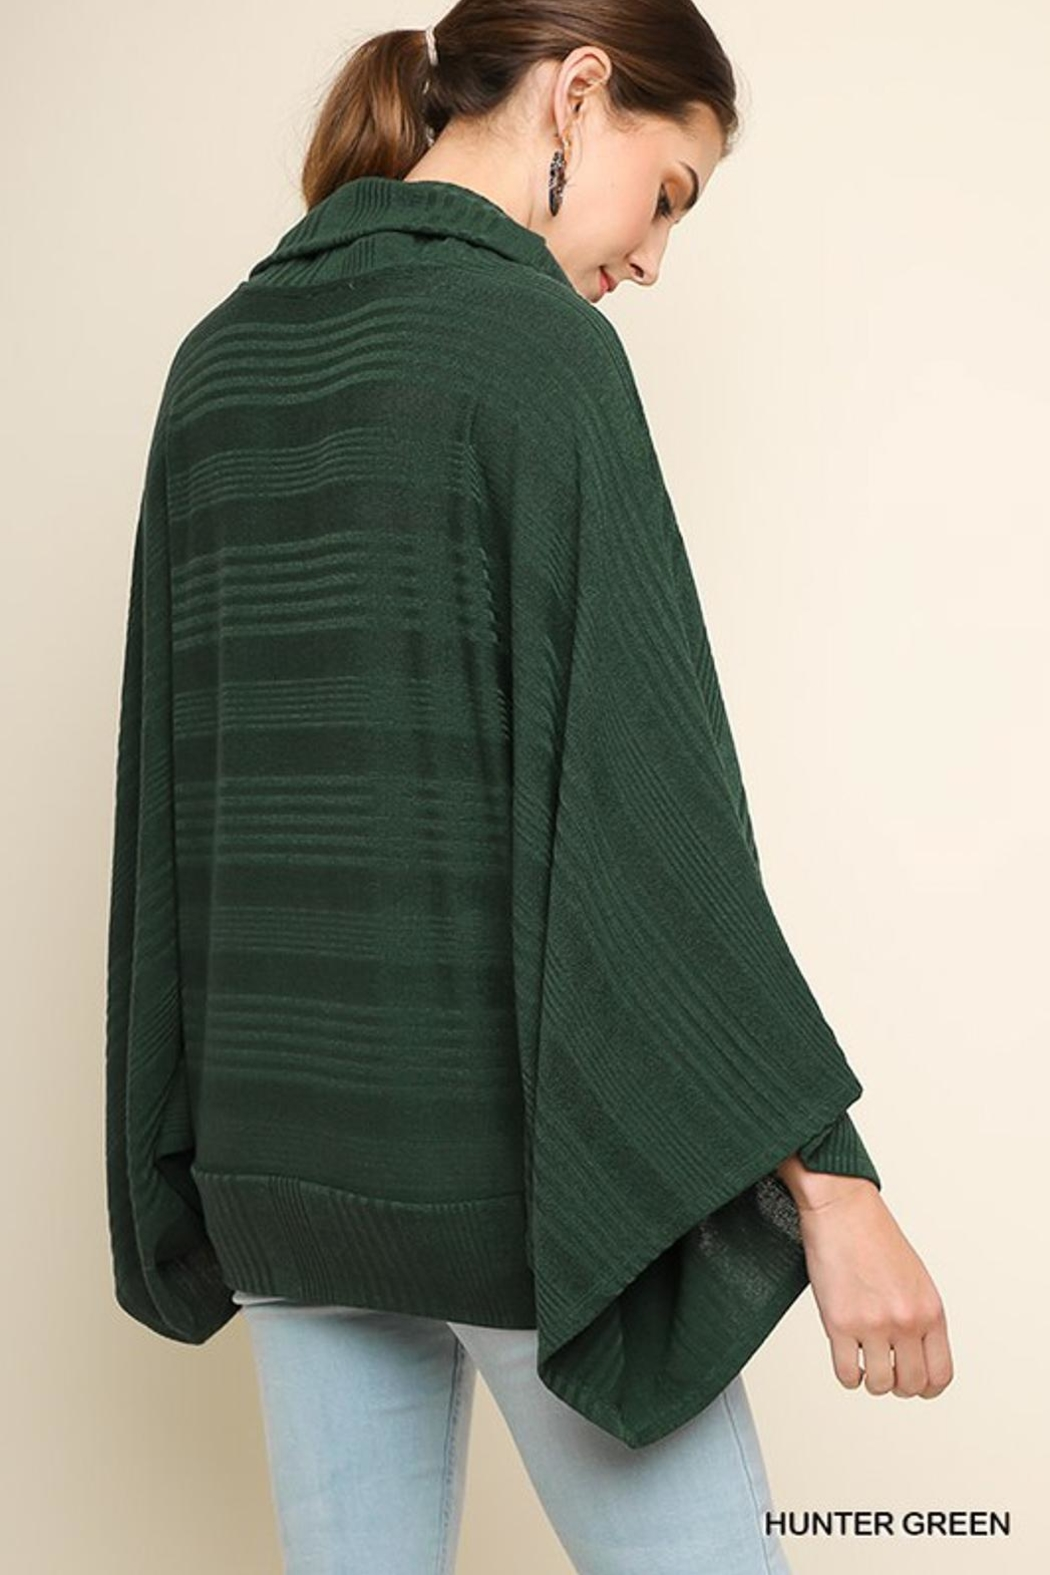 Umgee USA Hunter Green Sweater - Front Full Image